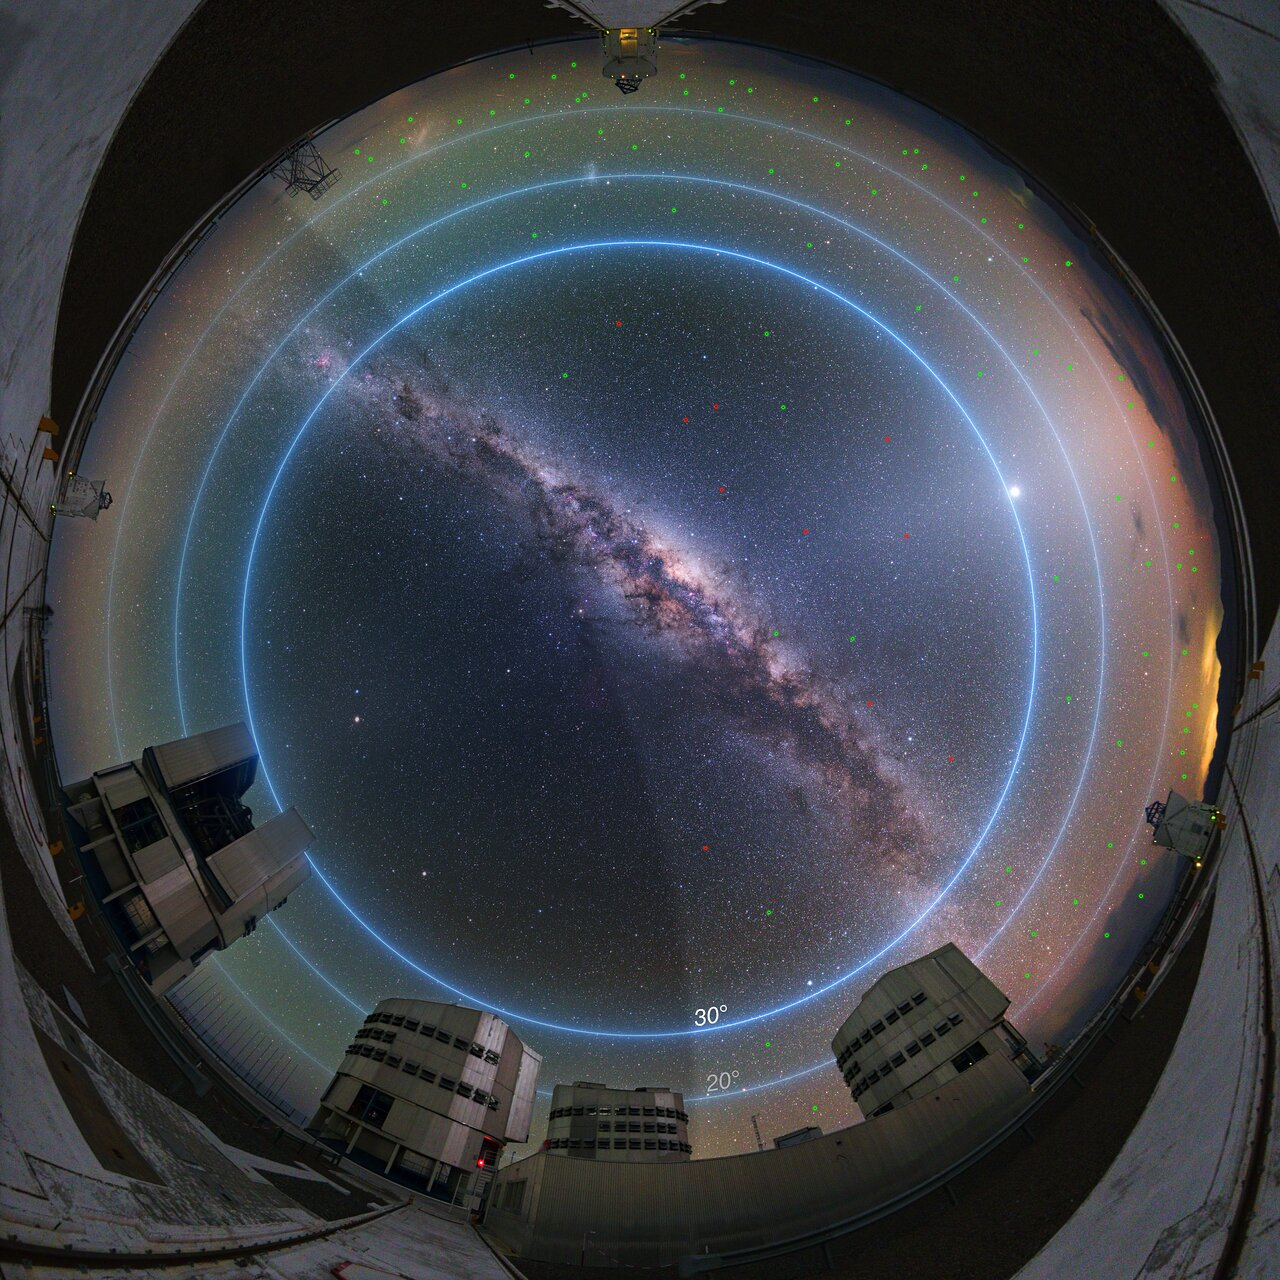 New ESO Study Evaluates Impact of Satellite Constellations on Astronomical Observations